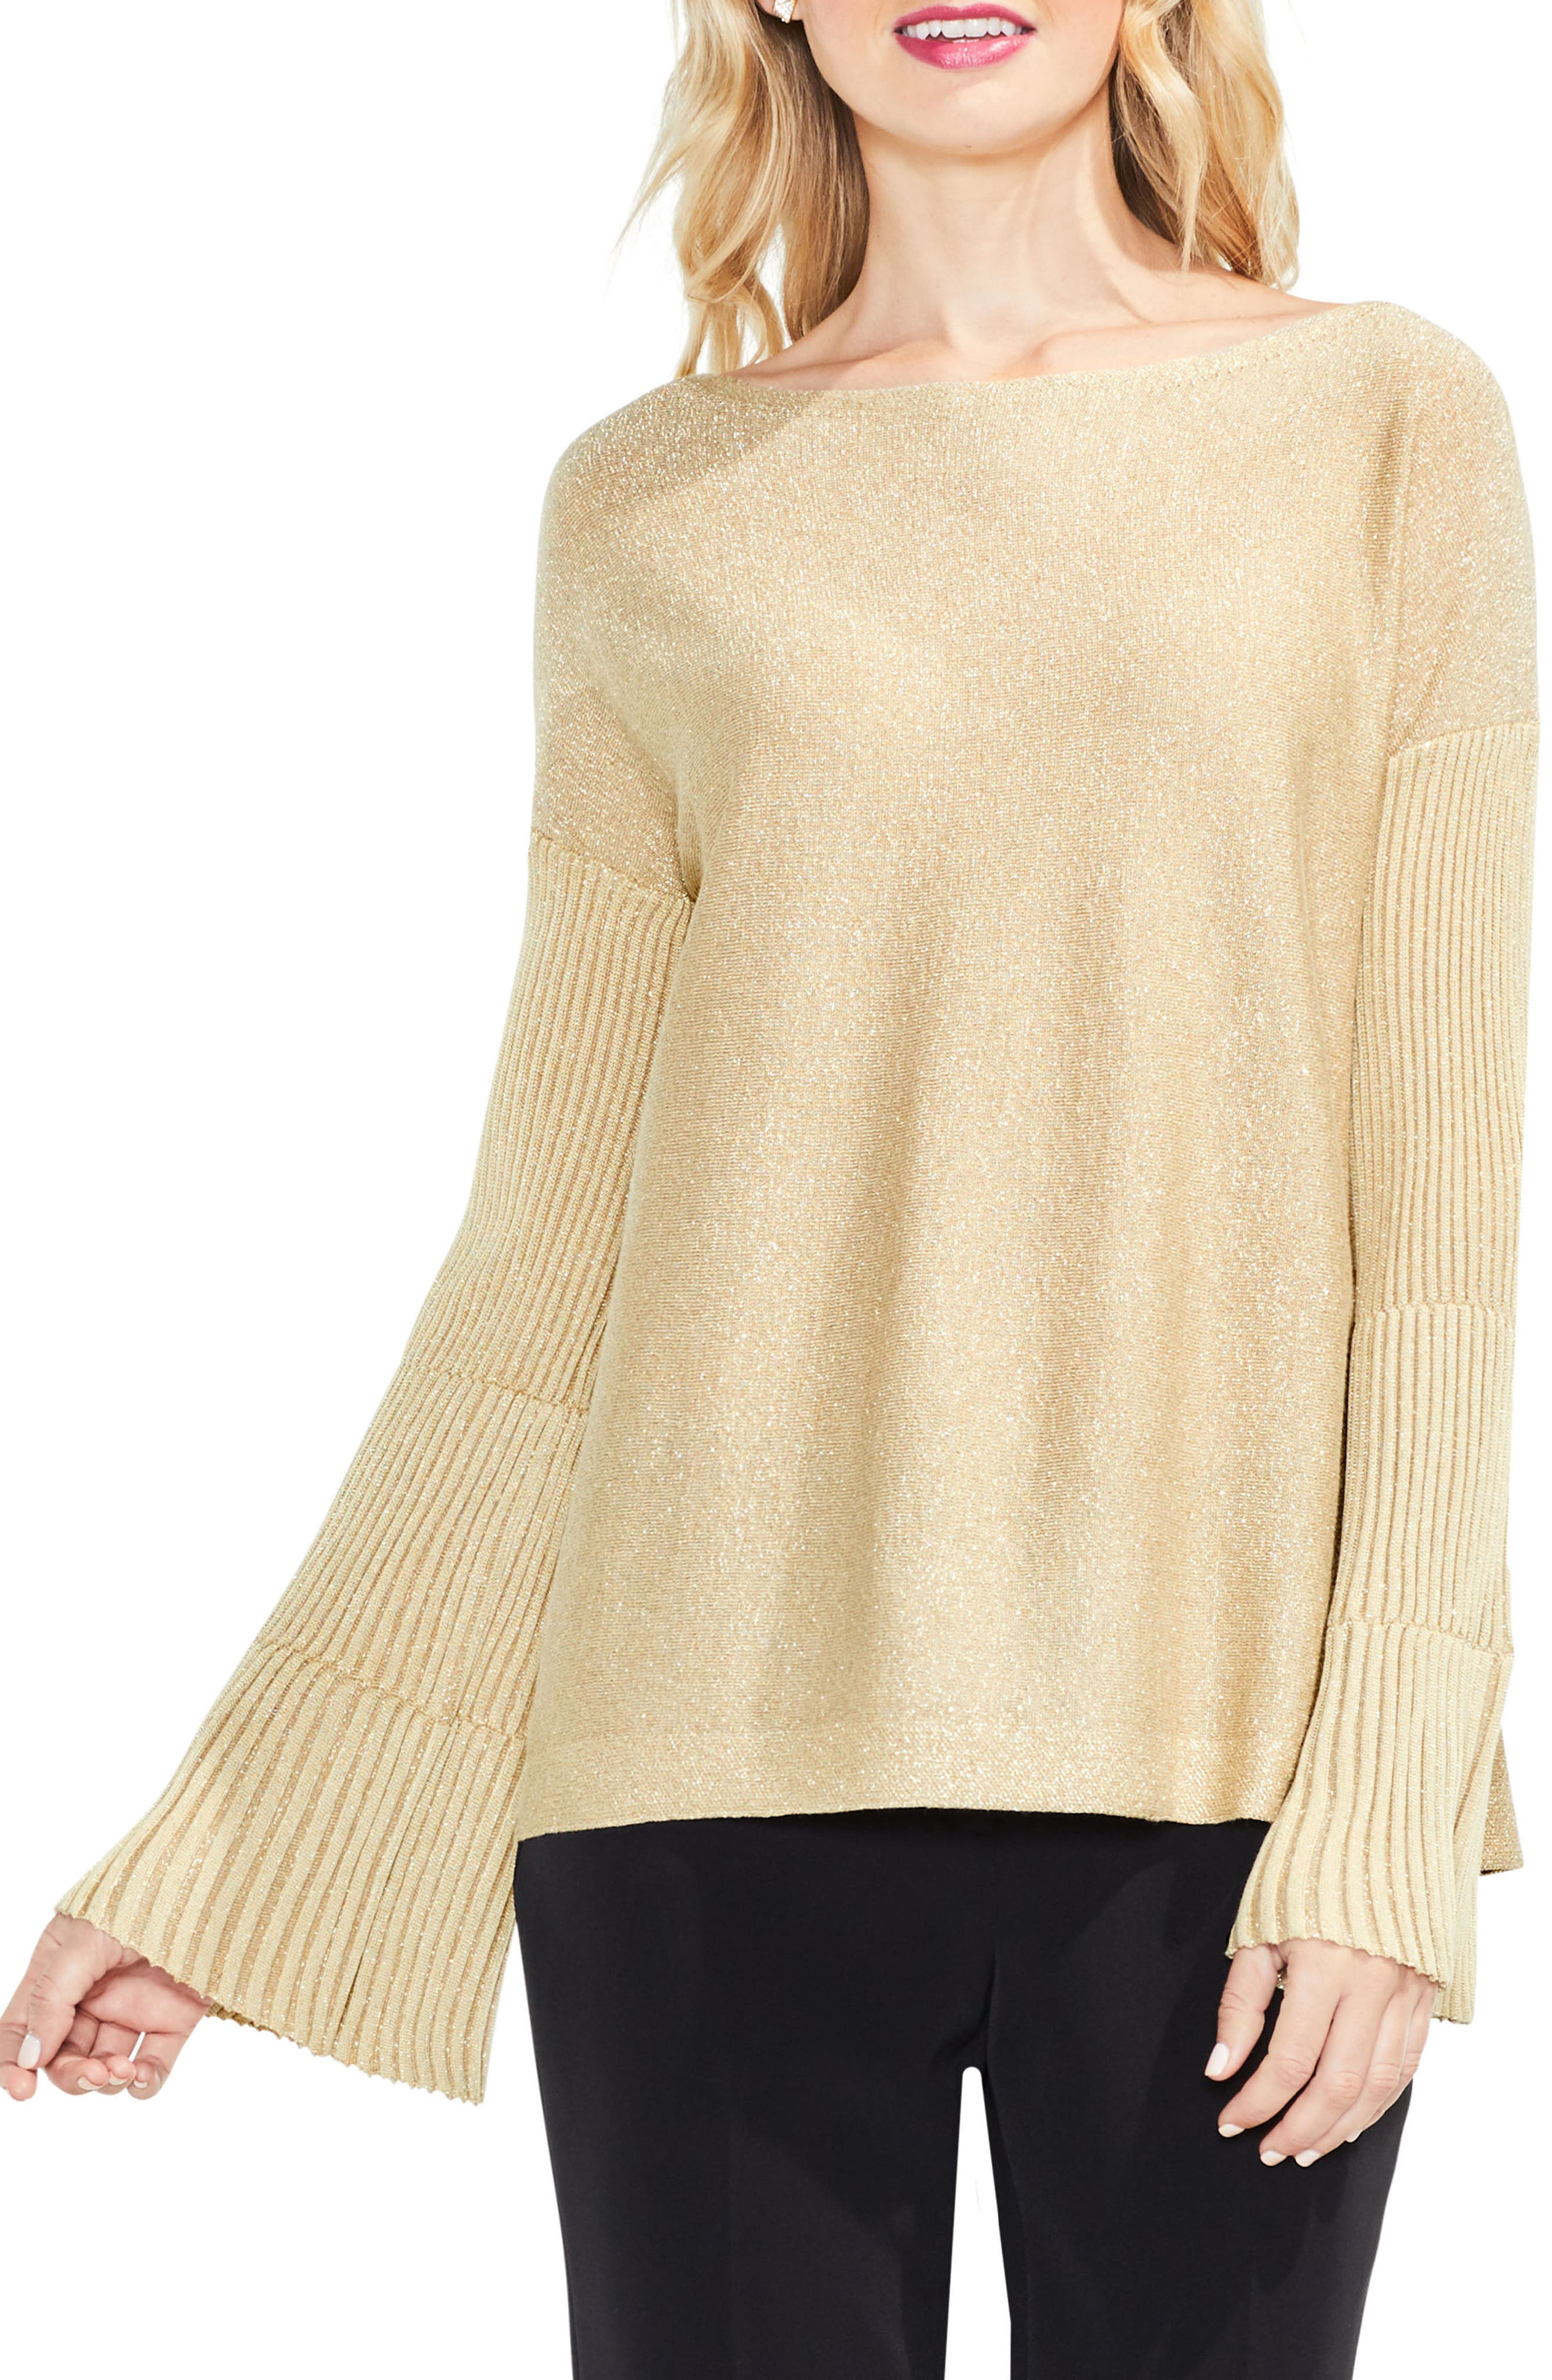 Vince Camuto Sparkly Bell Sleeve Sweater